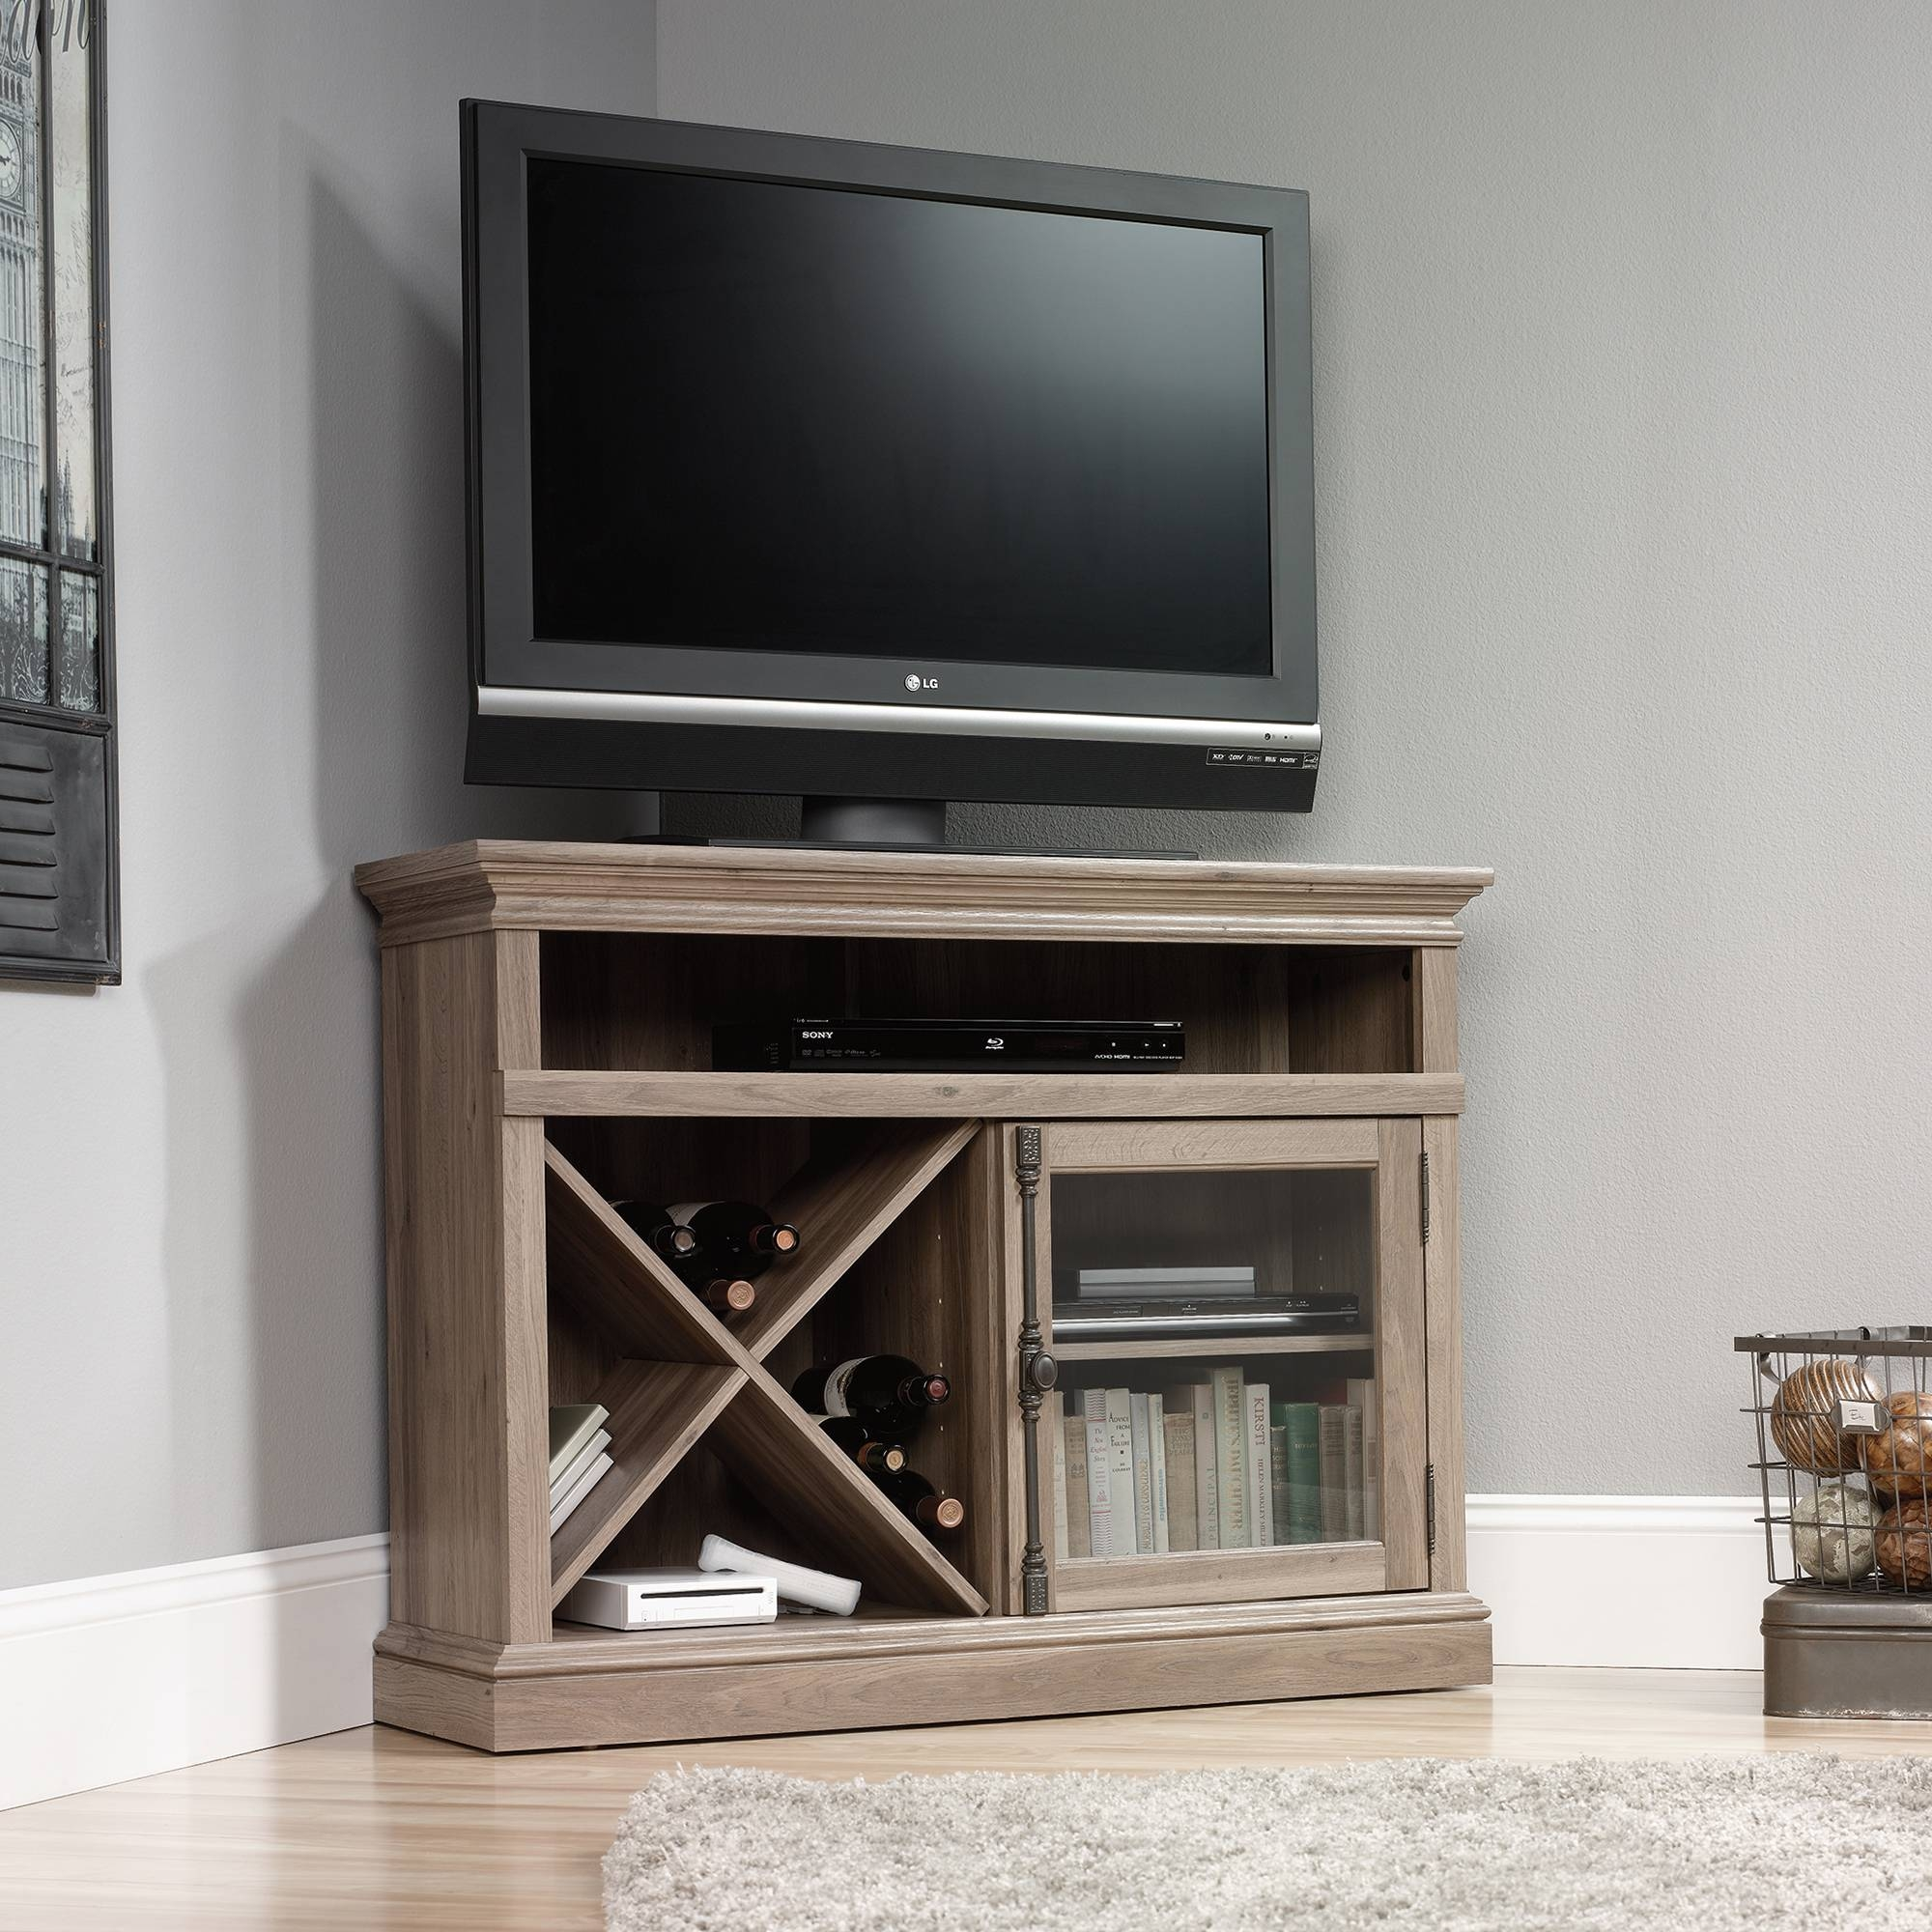 Wooden Corner Tv Stand With Single Glass Cabinet Door And Lattice regarding Single Shelf Tv Stands (Image 15 of 15)